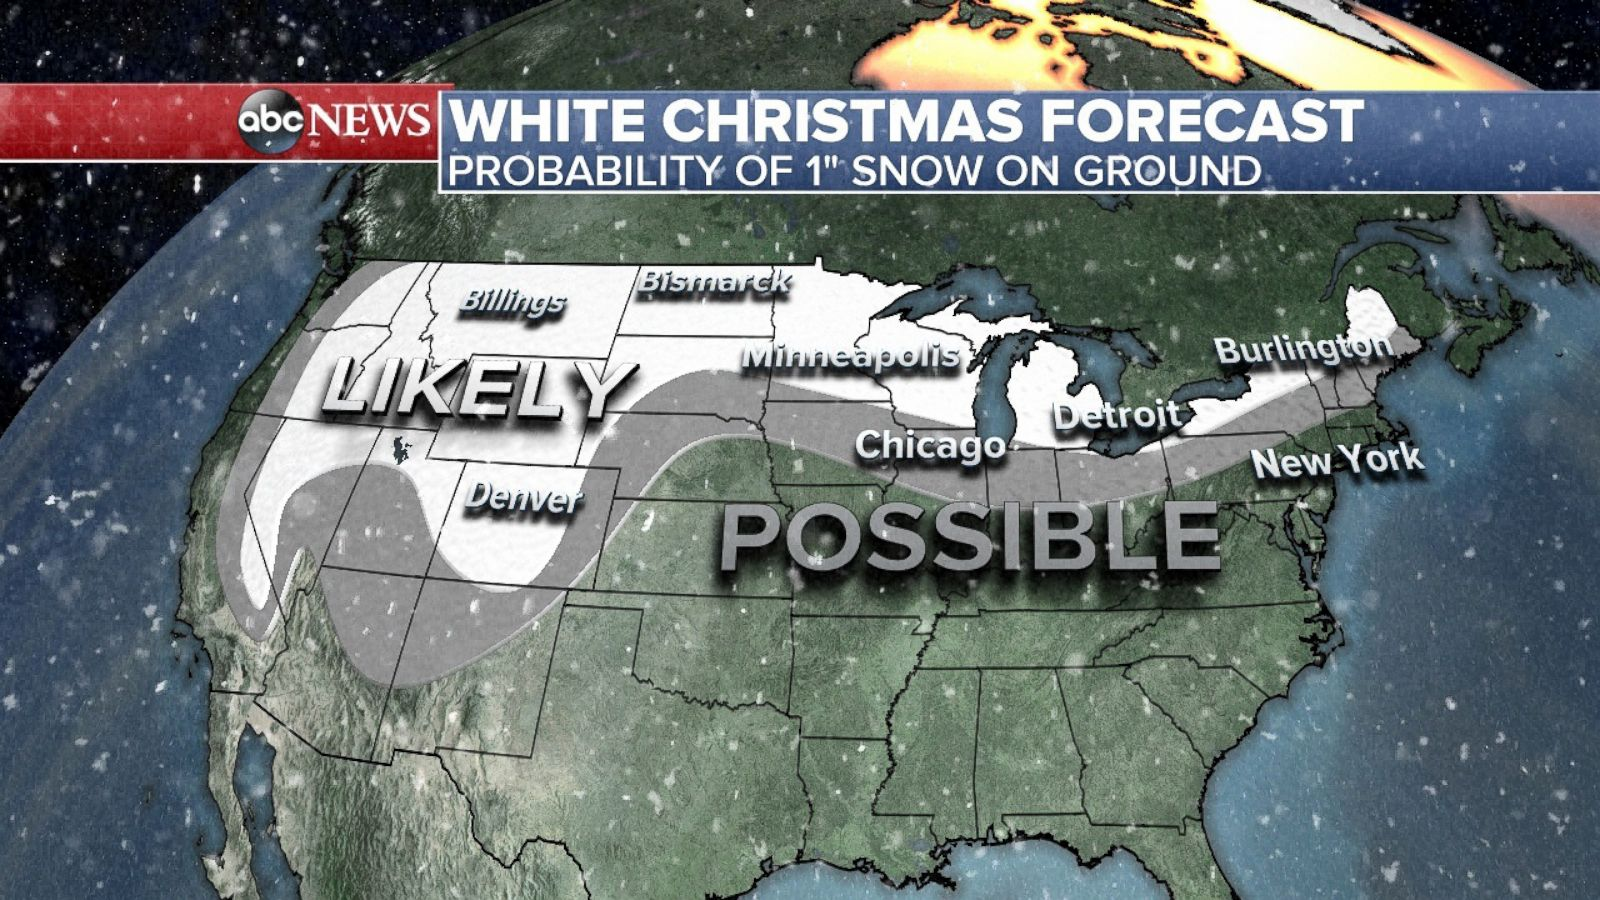 White Christmas Forecast.Where To Find A White Christmas This Year Abc News